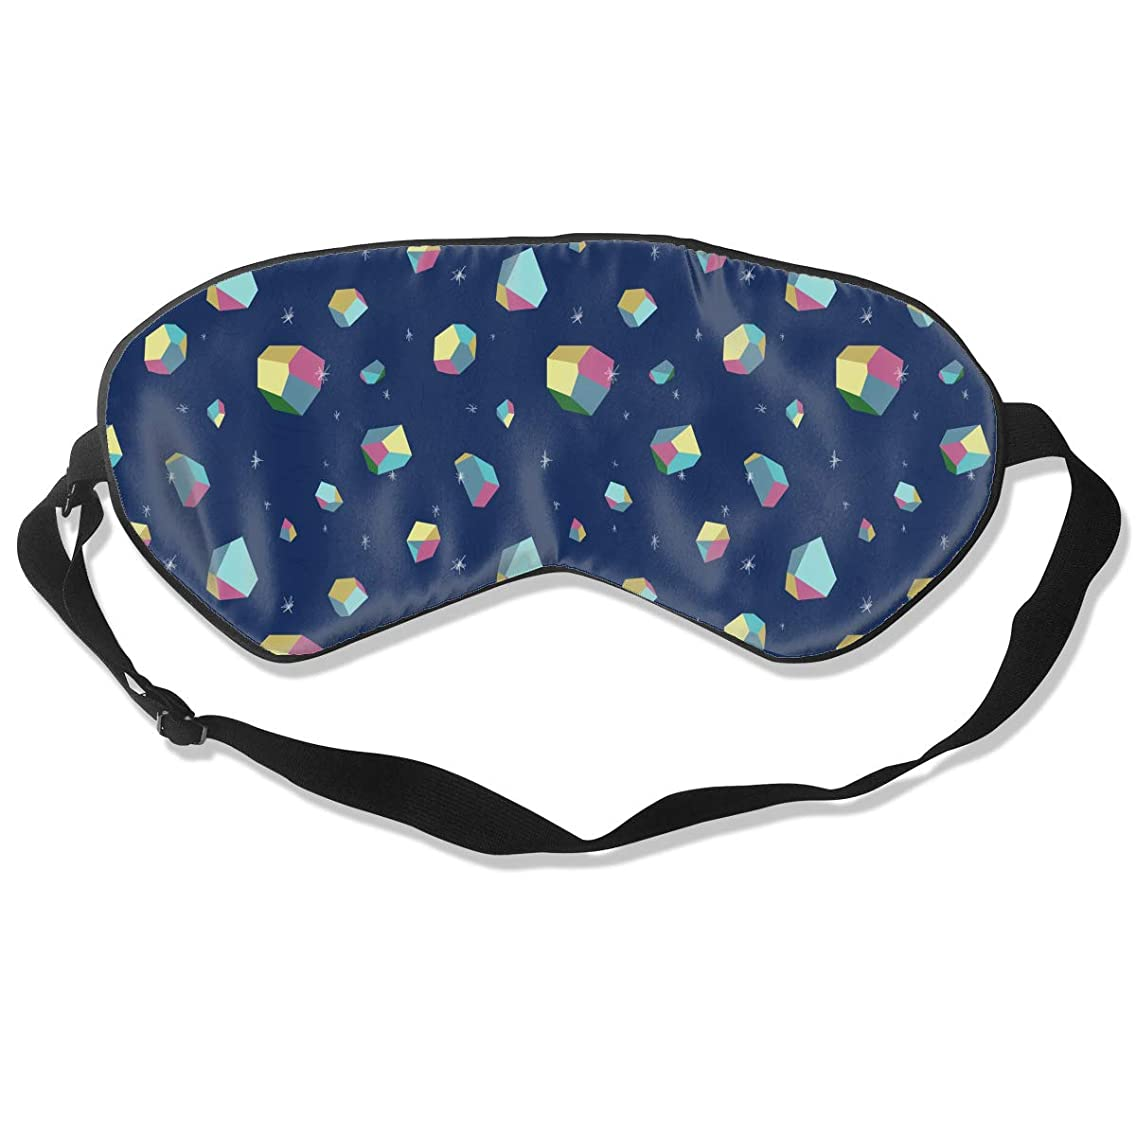 EEGOGO Many Color Polygons Sleep Mask Made of Mulberry Silk,Non-Toxic, Odorless and Harmless,100% Silk Sleep Mask Comfortable,Soft Blindfold Eye Mask Good for Travel and Sleep